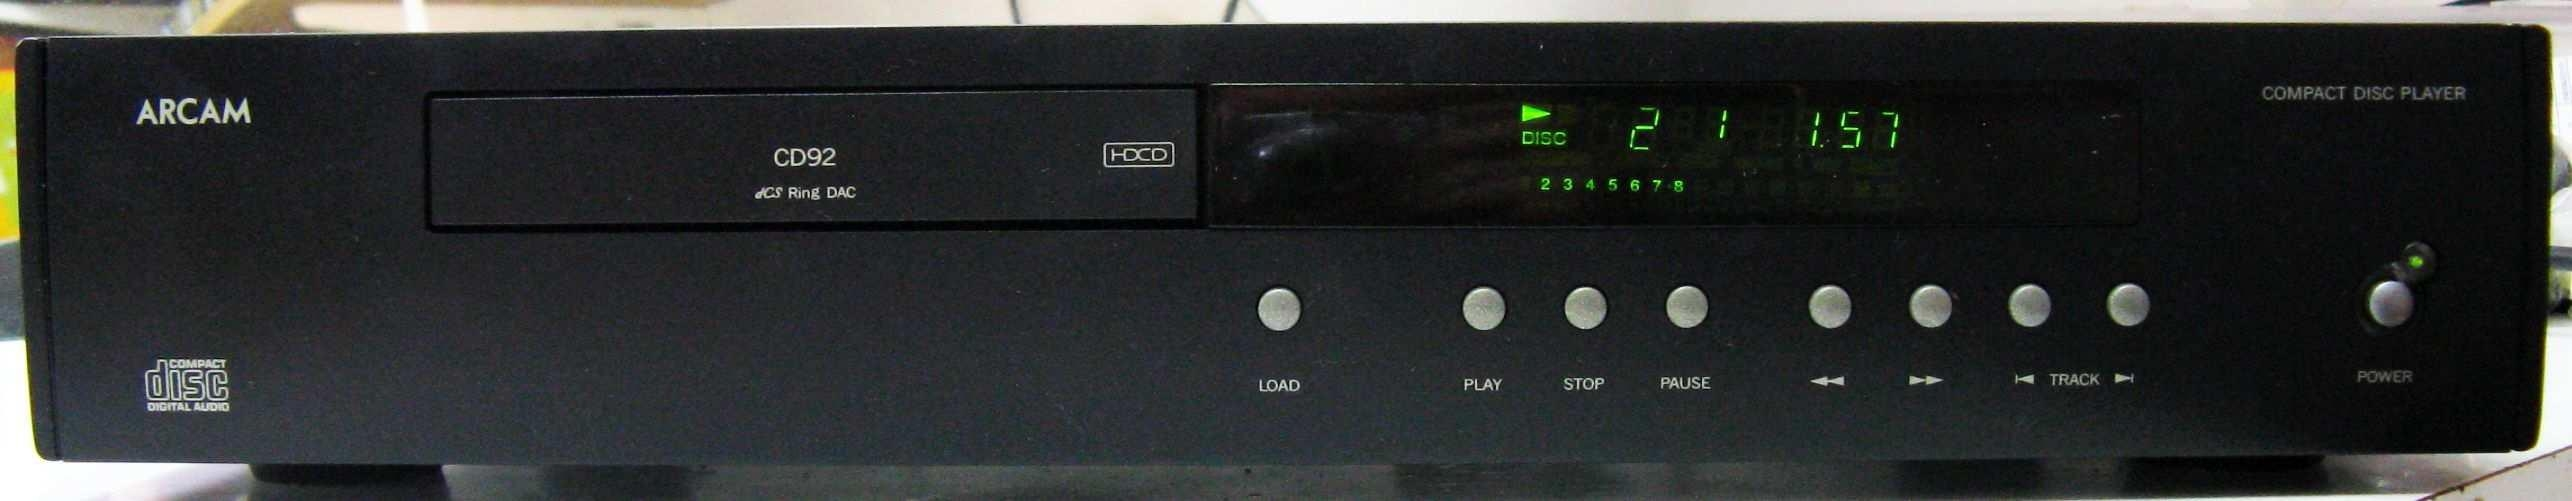 Steves do it yourself cd players project arcam cd 92 repair introduction solutioingenieria Choice Image